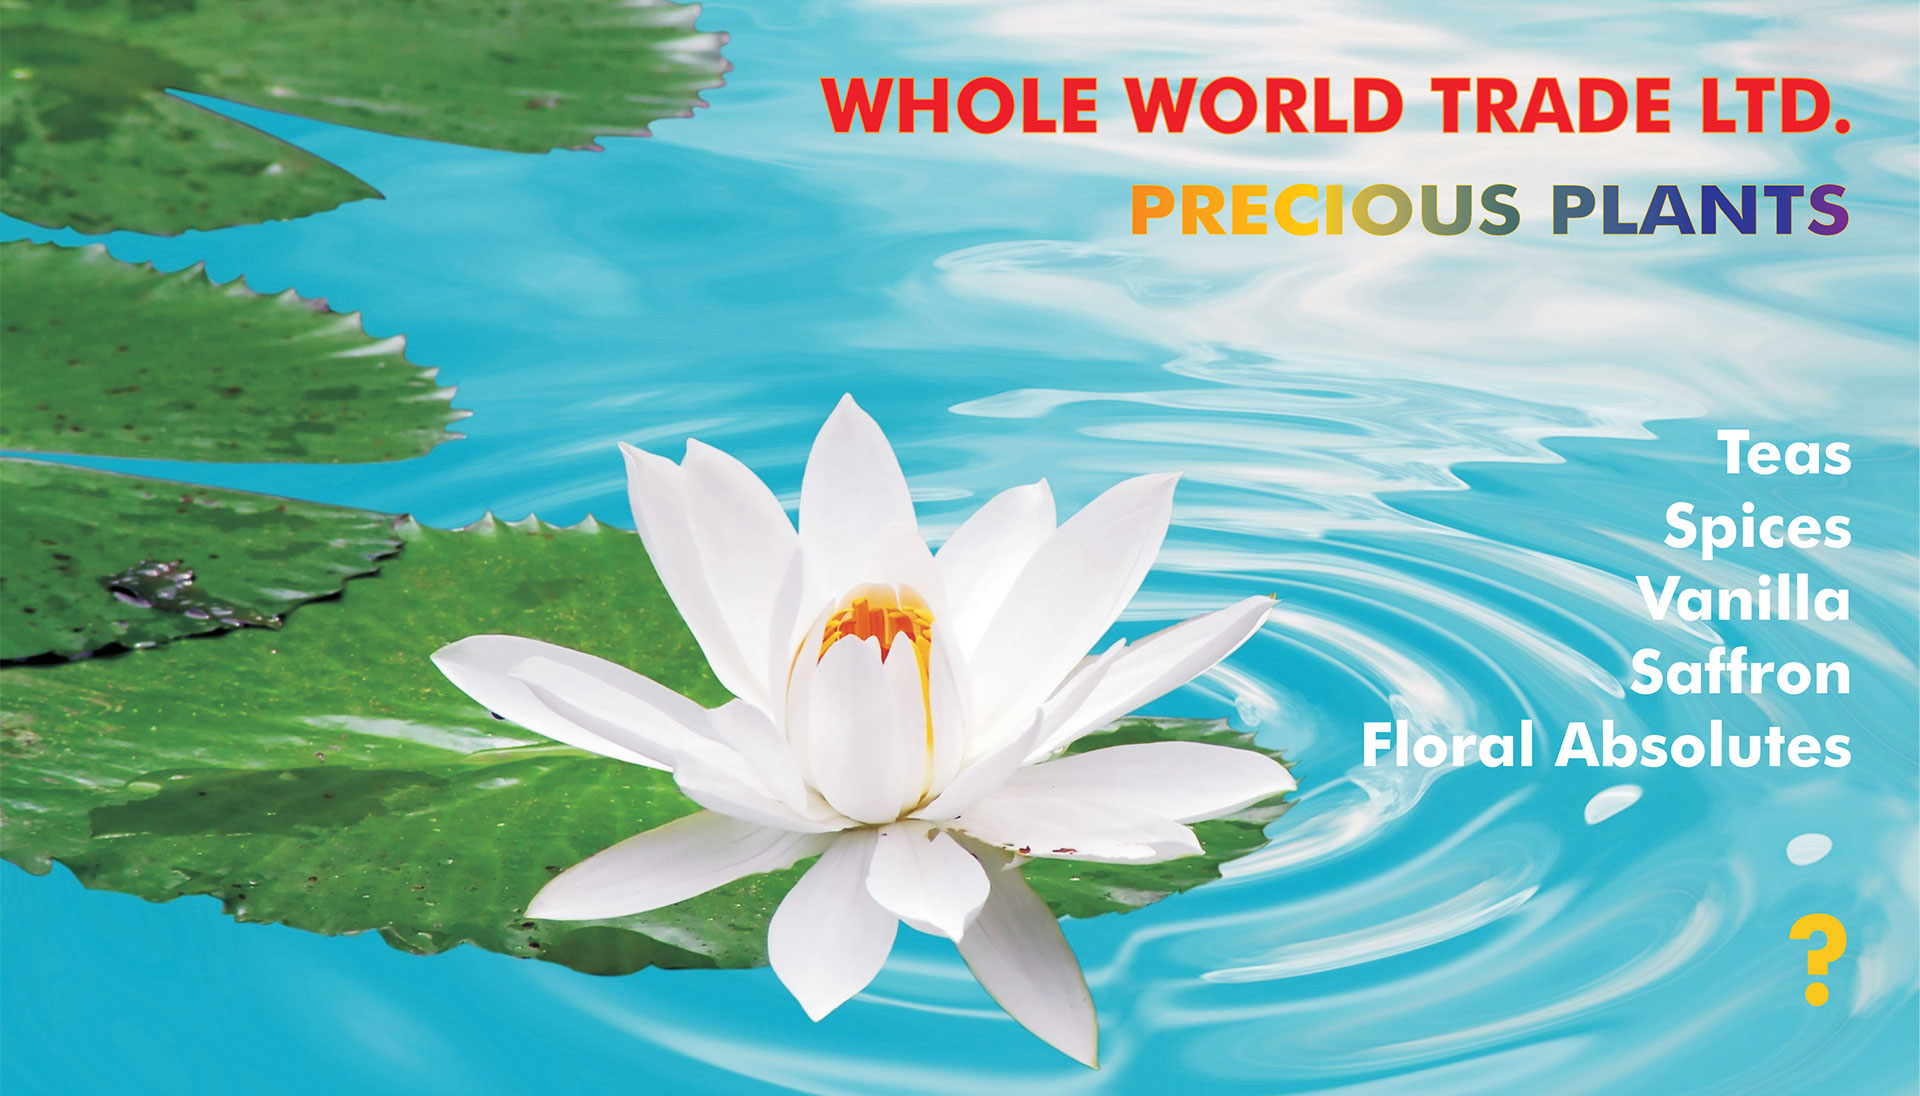 Whole World Trade Ltd. precious plants, teas, spices, vanilla, saffron, and floral absolutes.